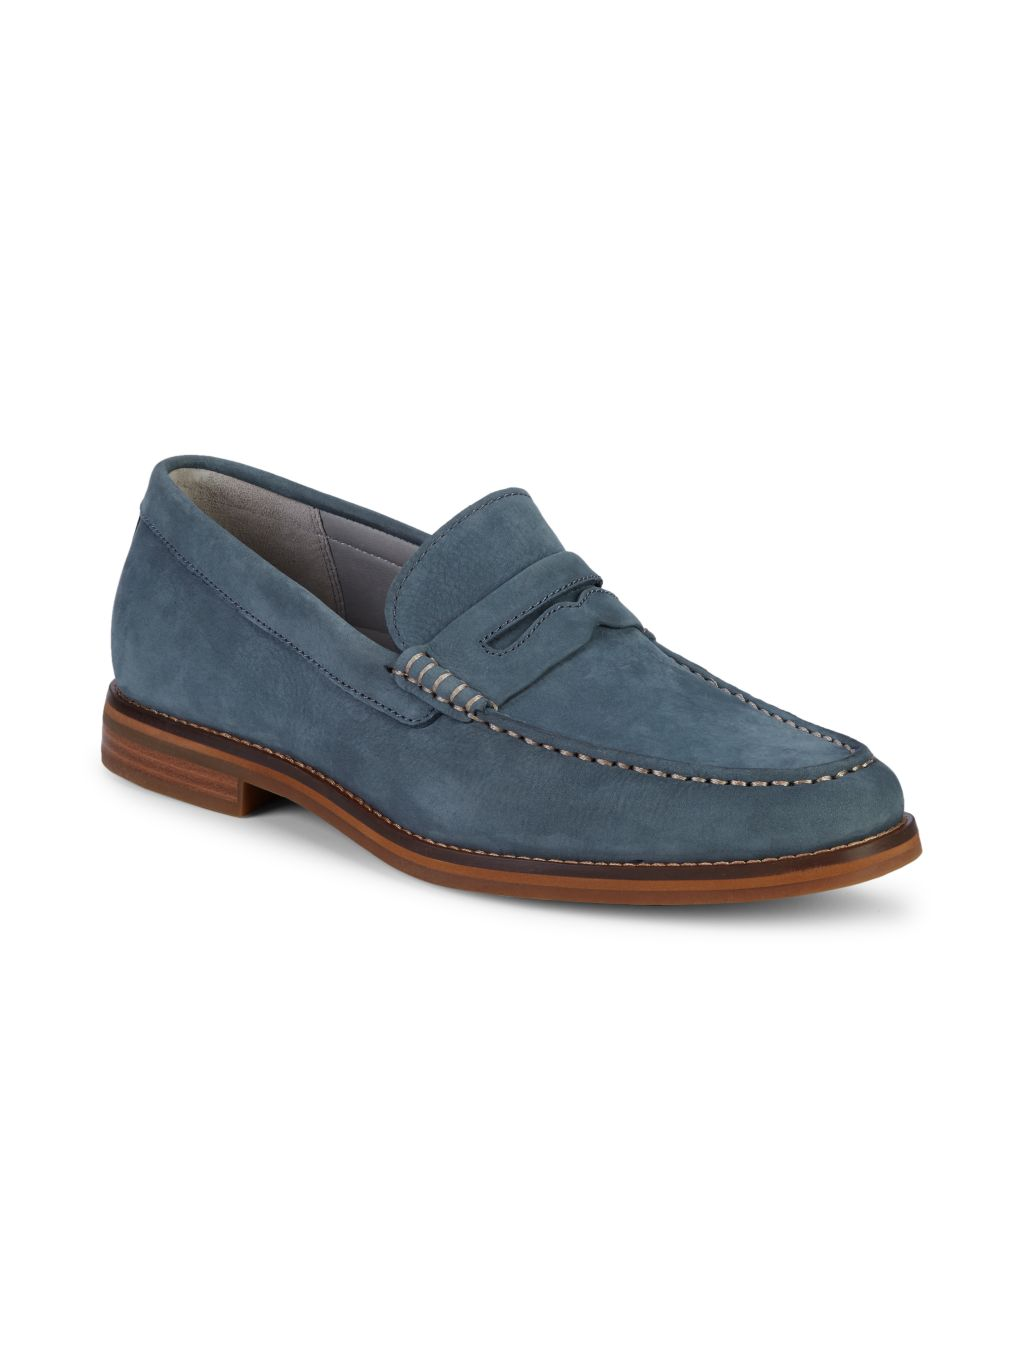 Sperry Gold Cup Exeter Suede Tassel Penny Loafers